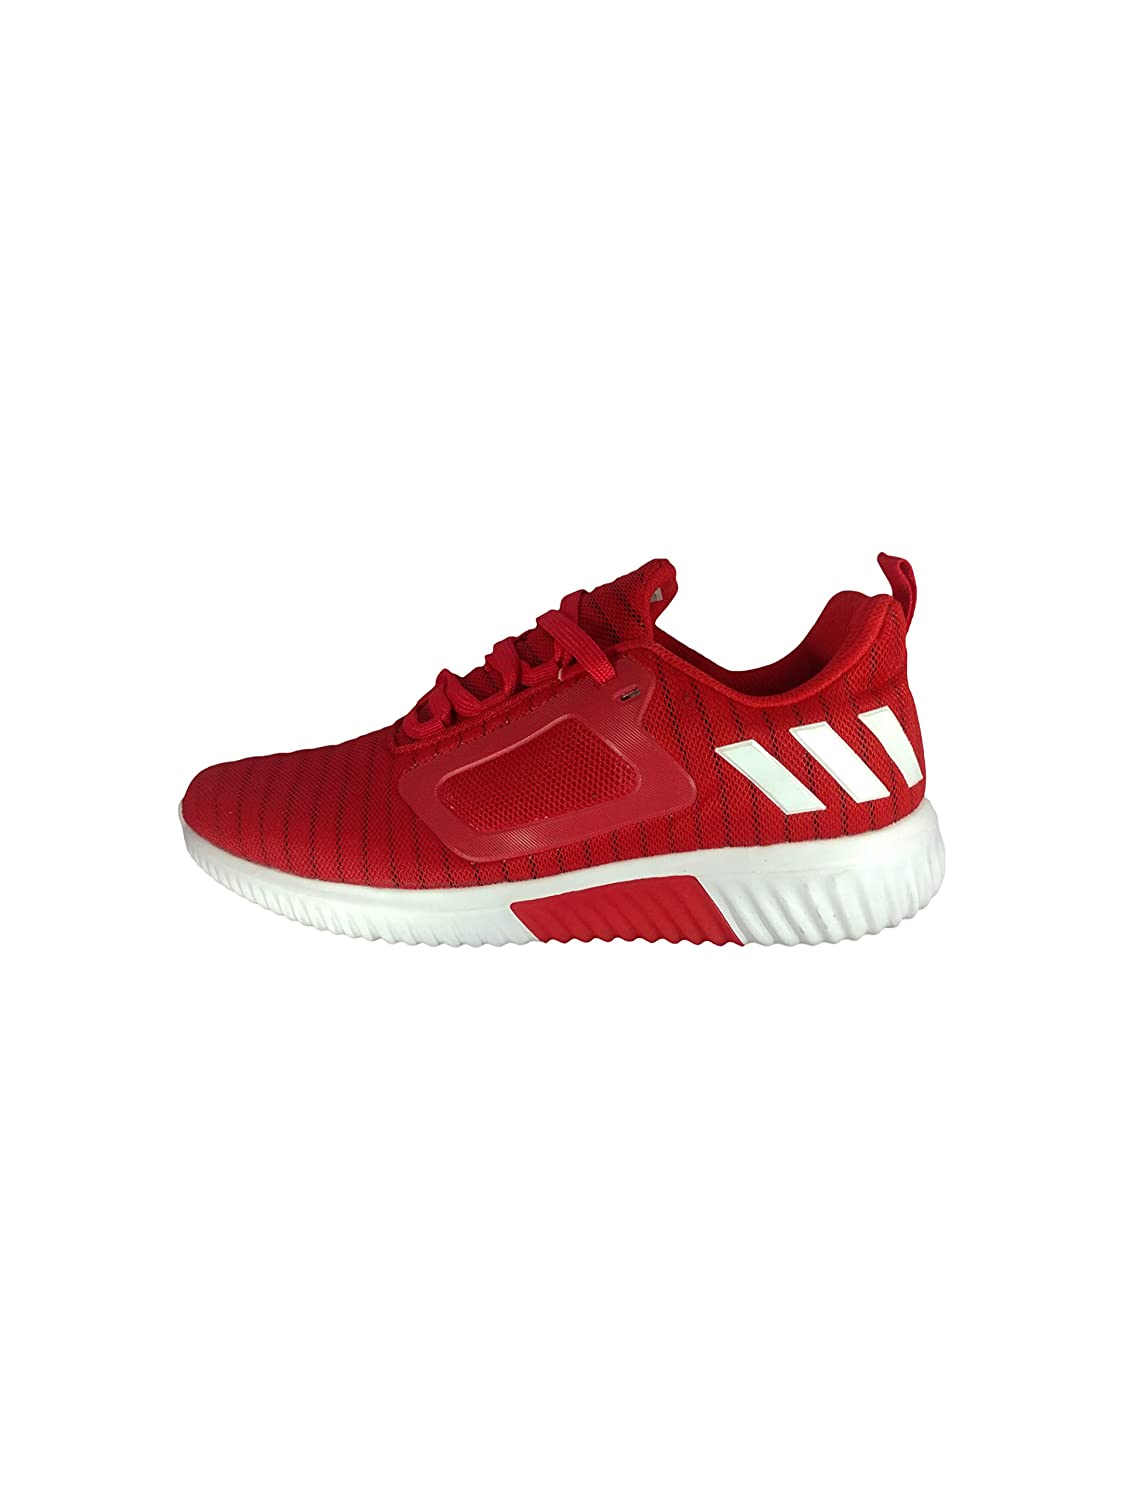 factory authentic 22499 984fe Adidas Men's Climacool Shoes: Buy Online at Low Prices in ...